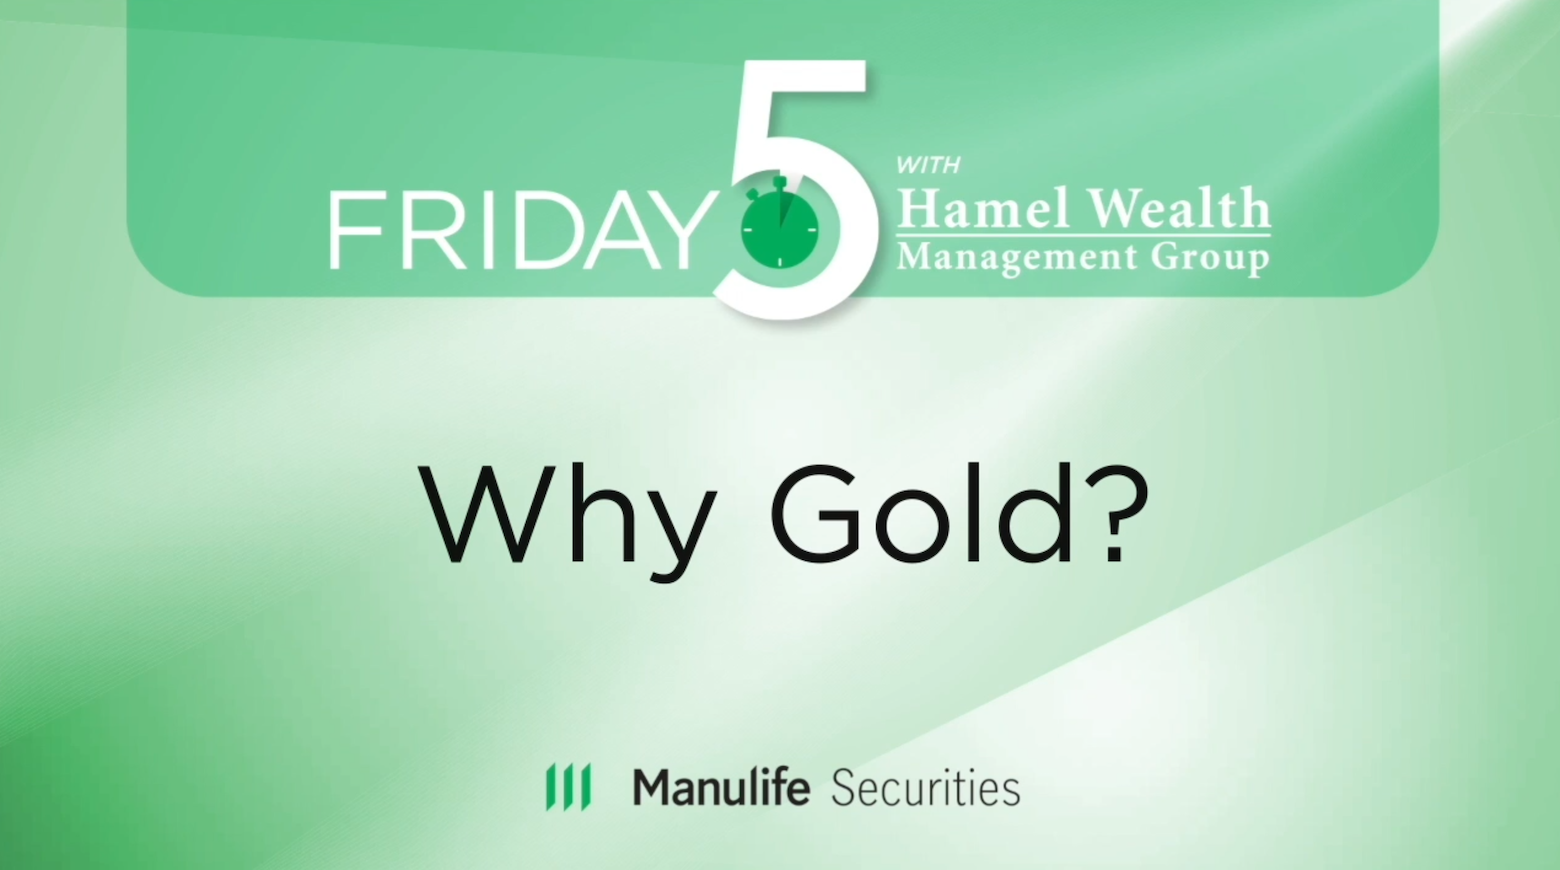 Friday 5 - Why Gold? - Graeme Cooper Thumbnail